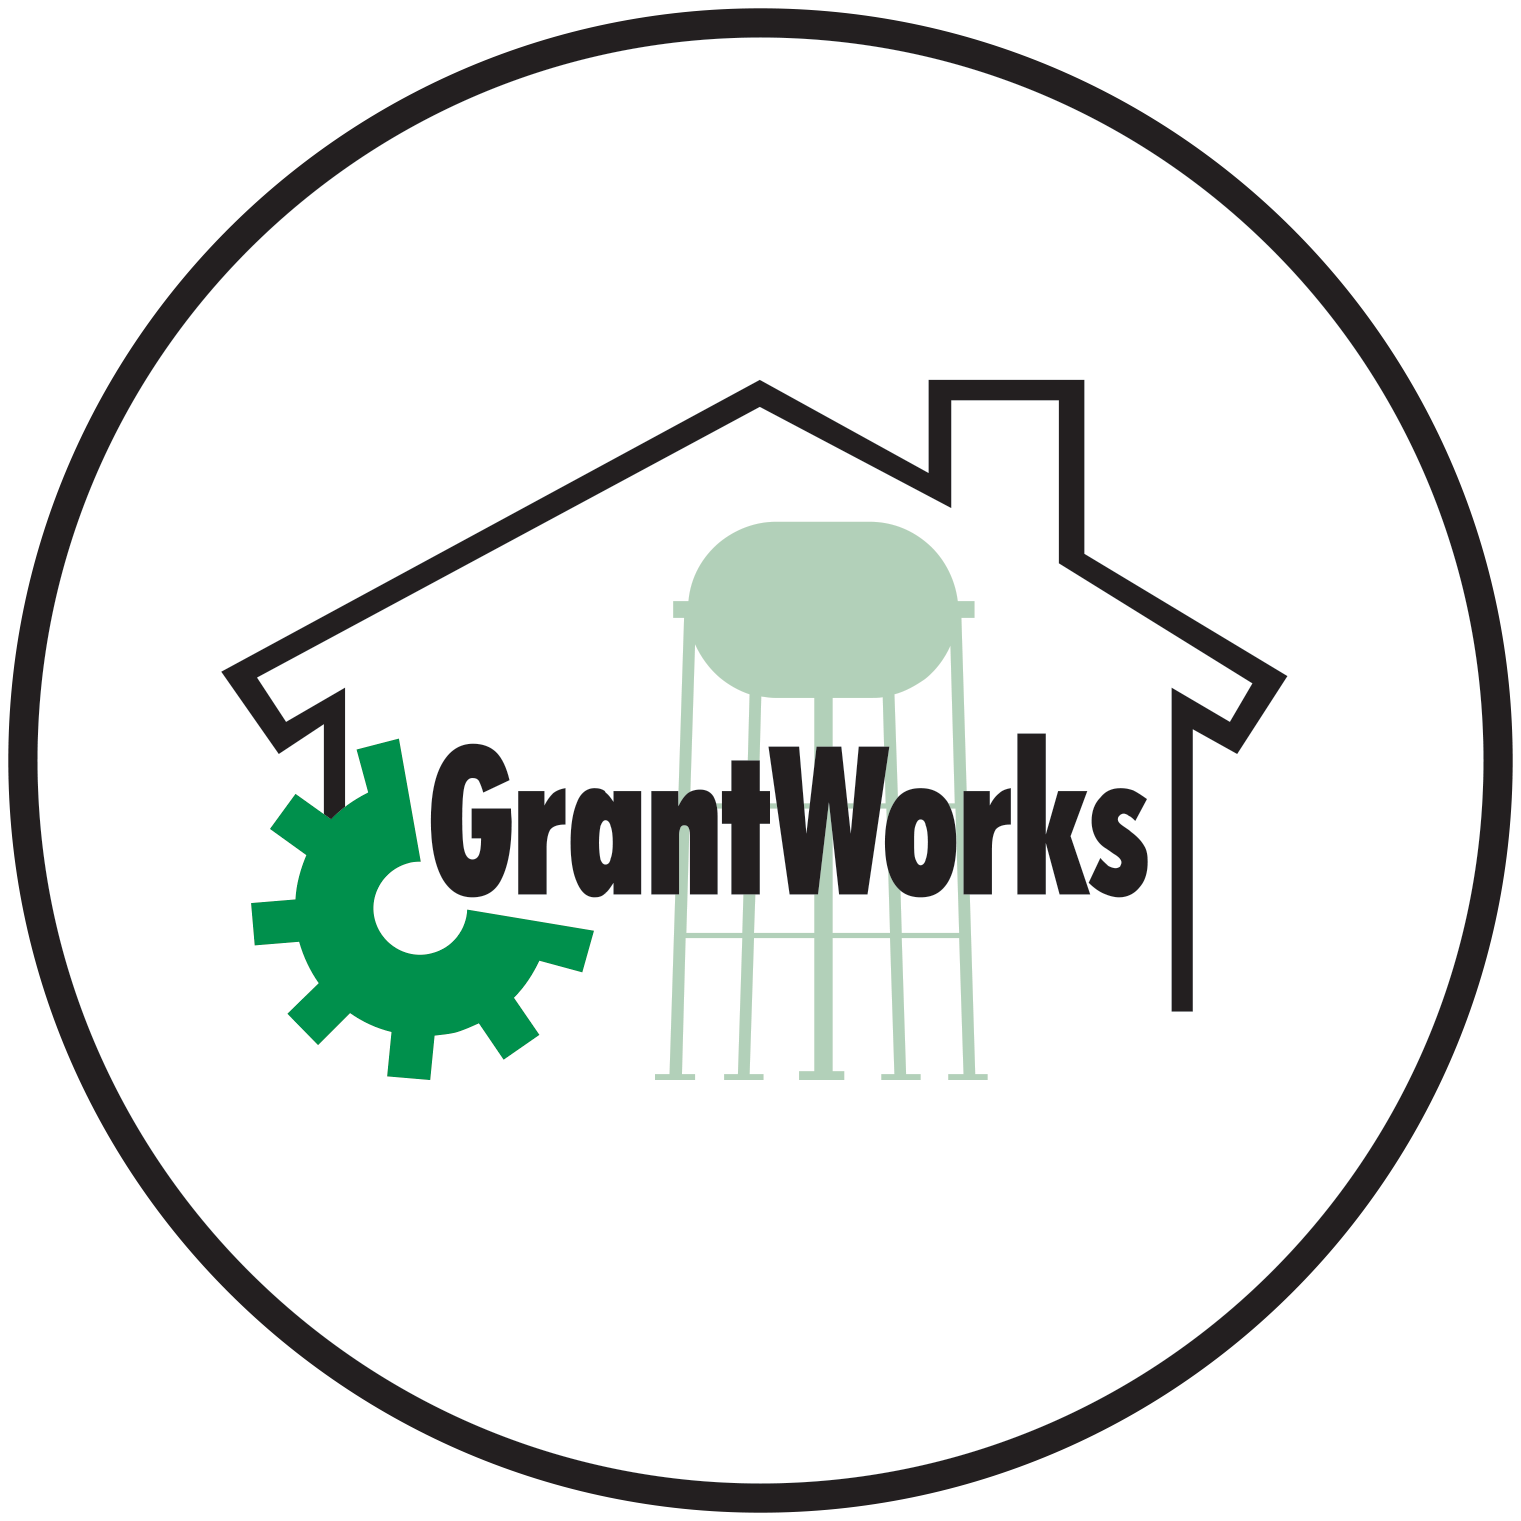 GrantWorks